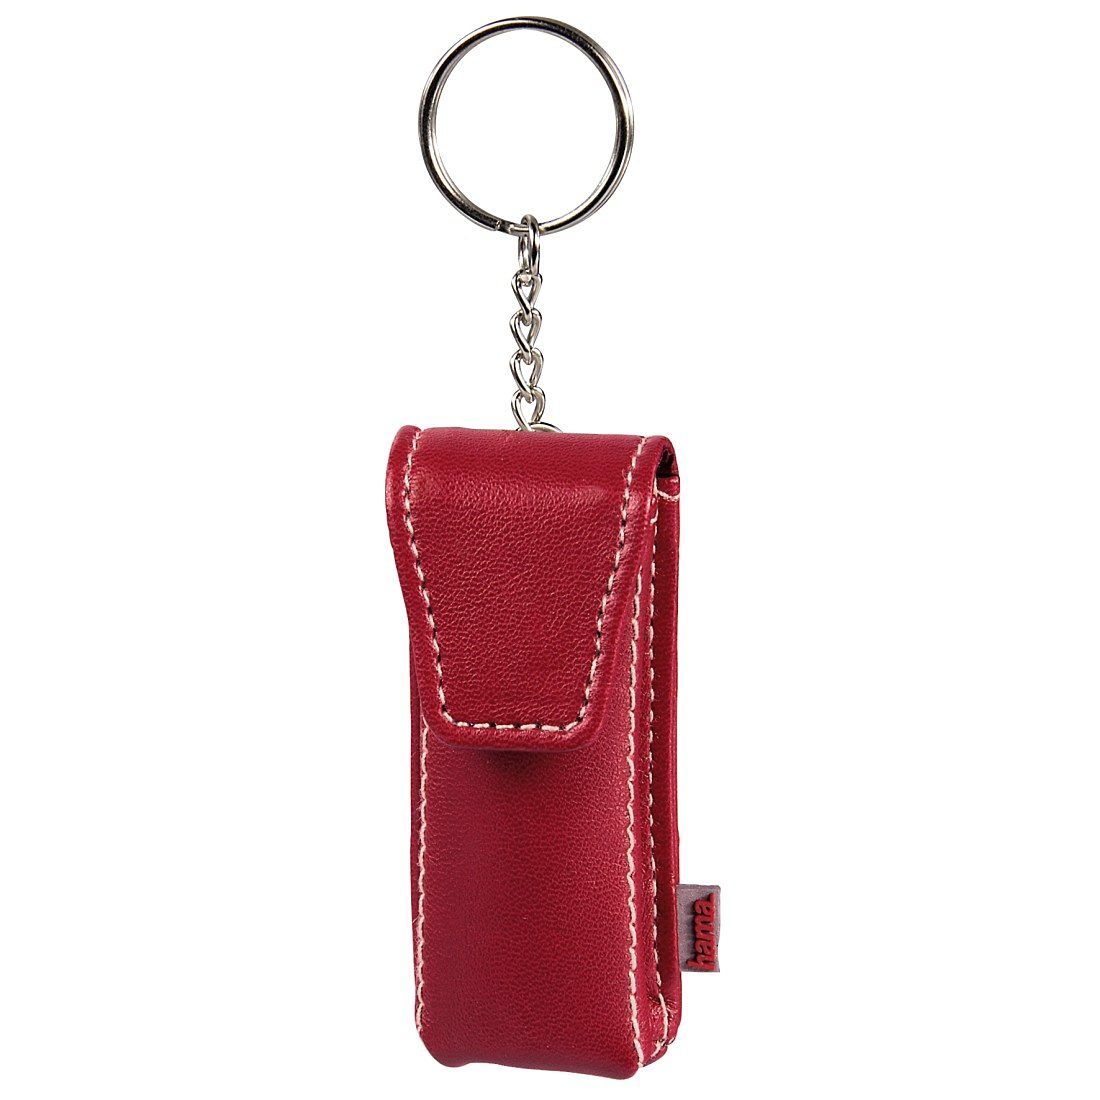 Hama USB-Stick-Case Fashion, Rot